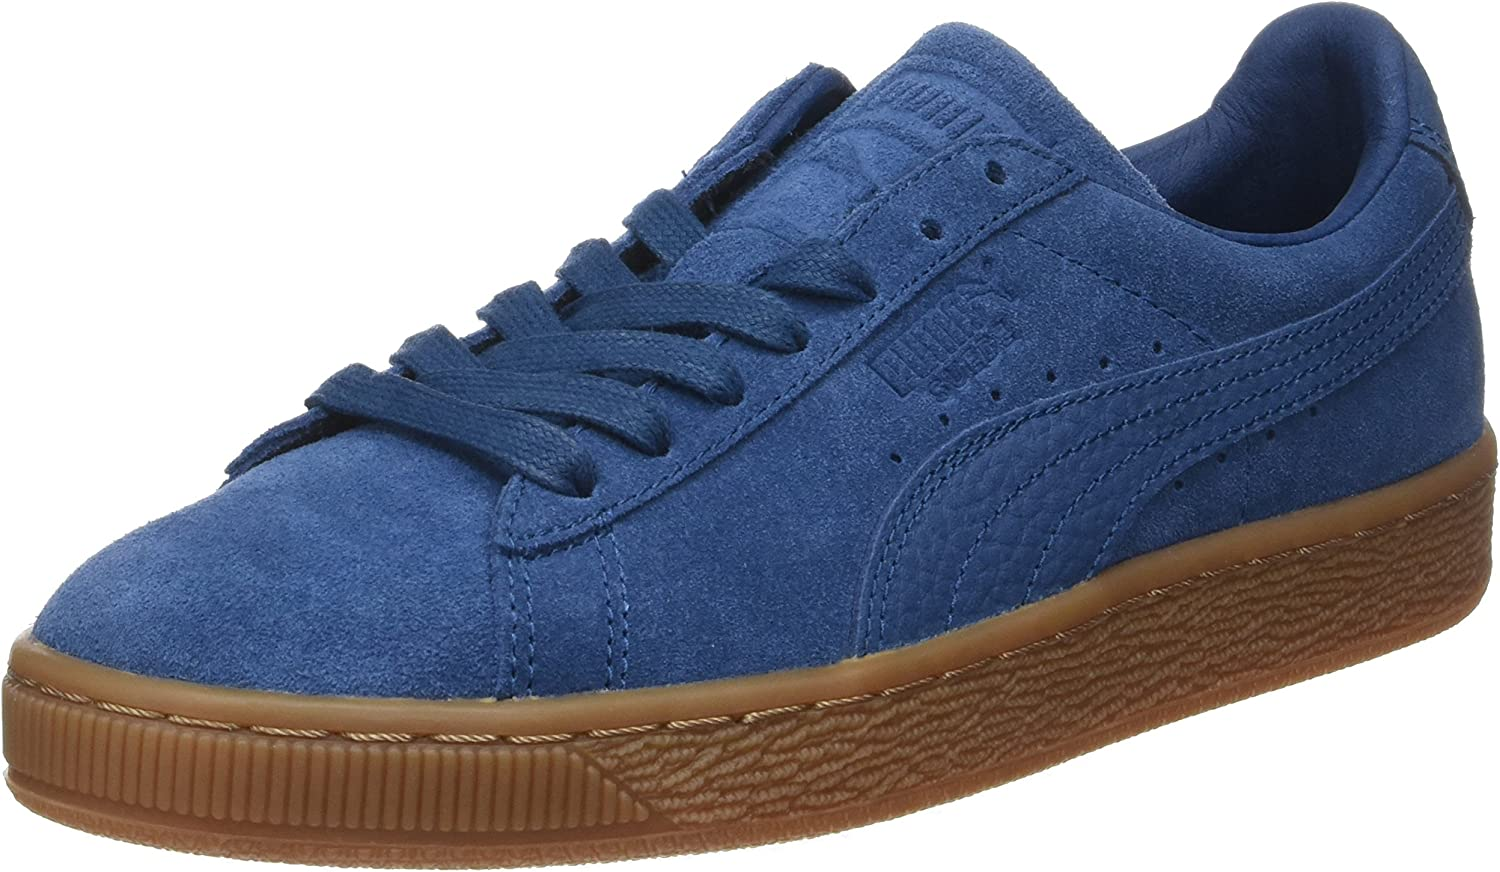 PUMA Unisex Adults' Suede Classic Natural Warmth Low-Top Sneakers, Grey, One Size Fits All